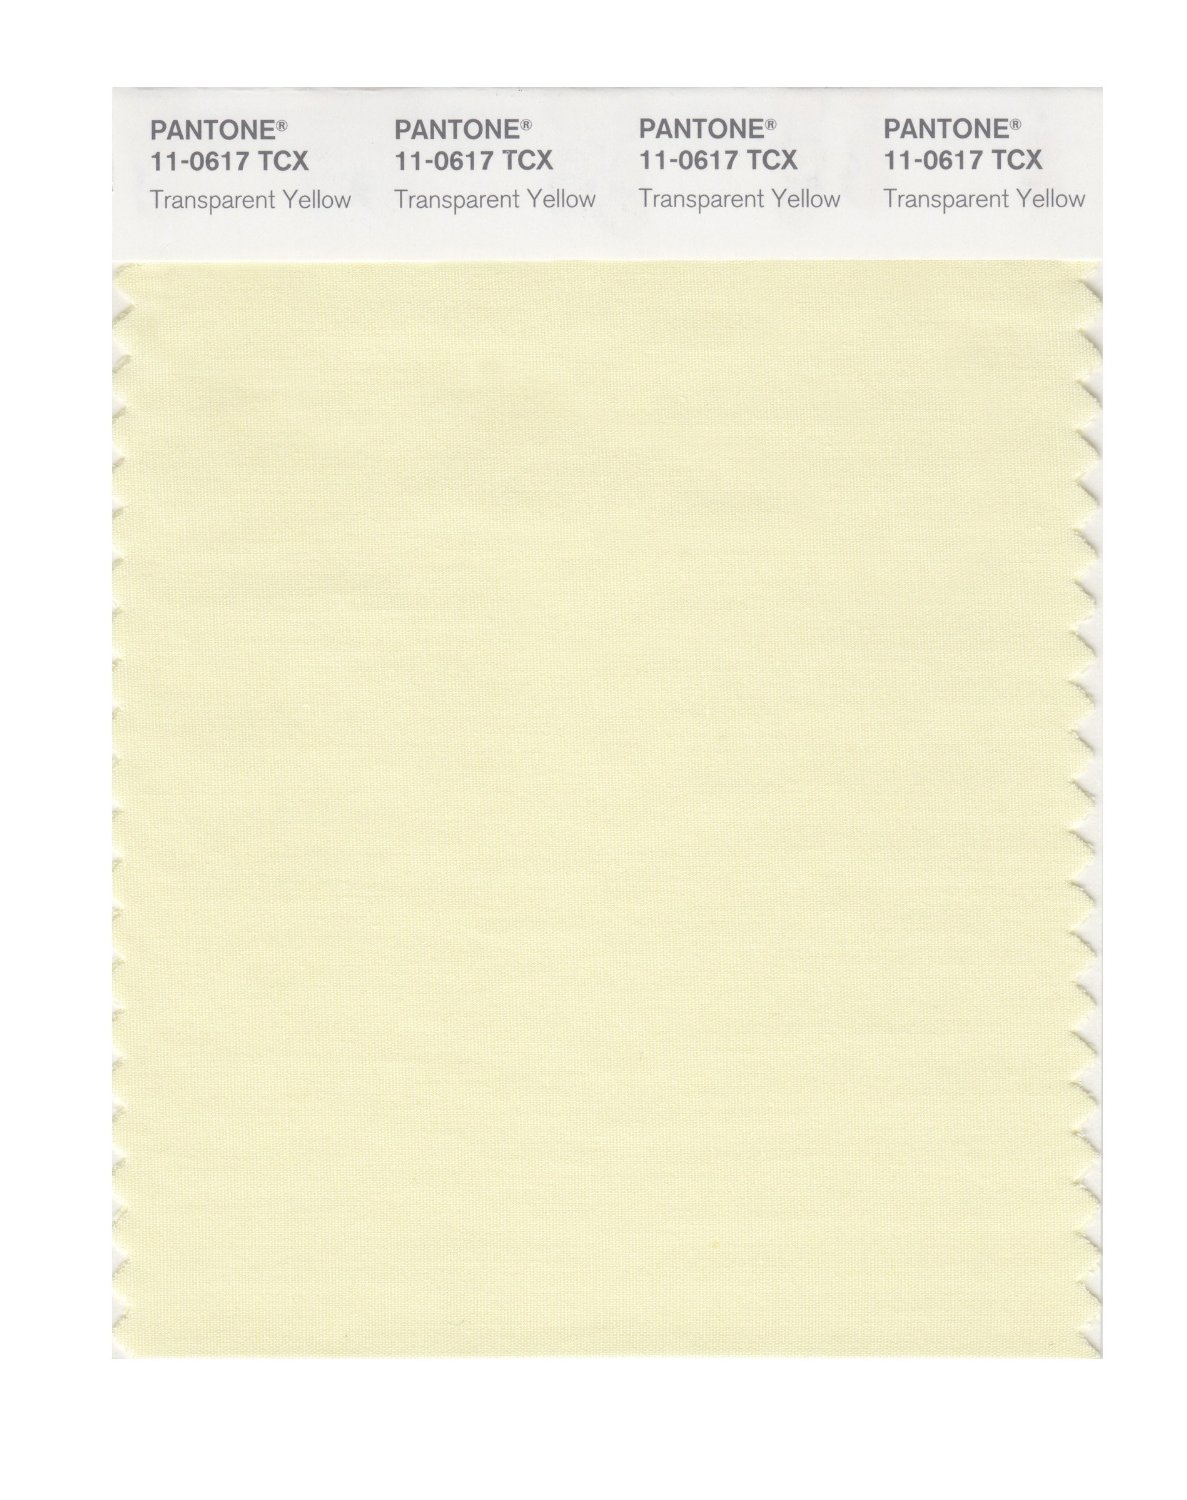 Pantone Smart Swatch 11-0617 Trans Yellow